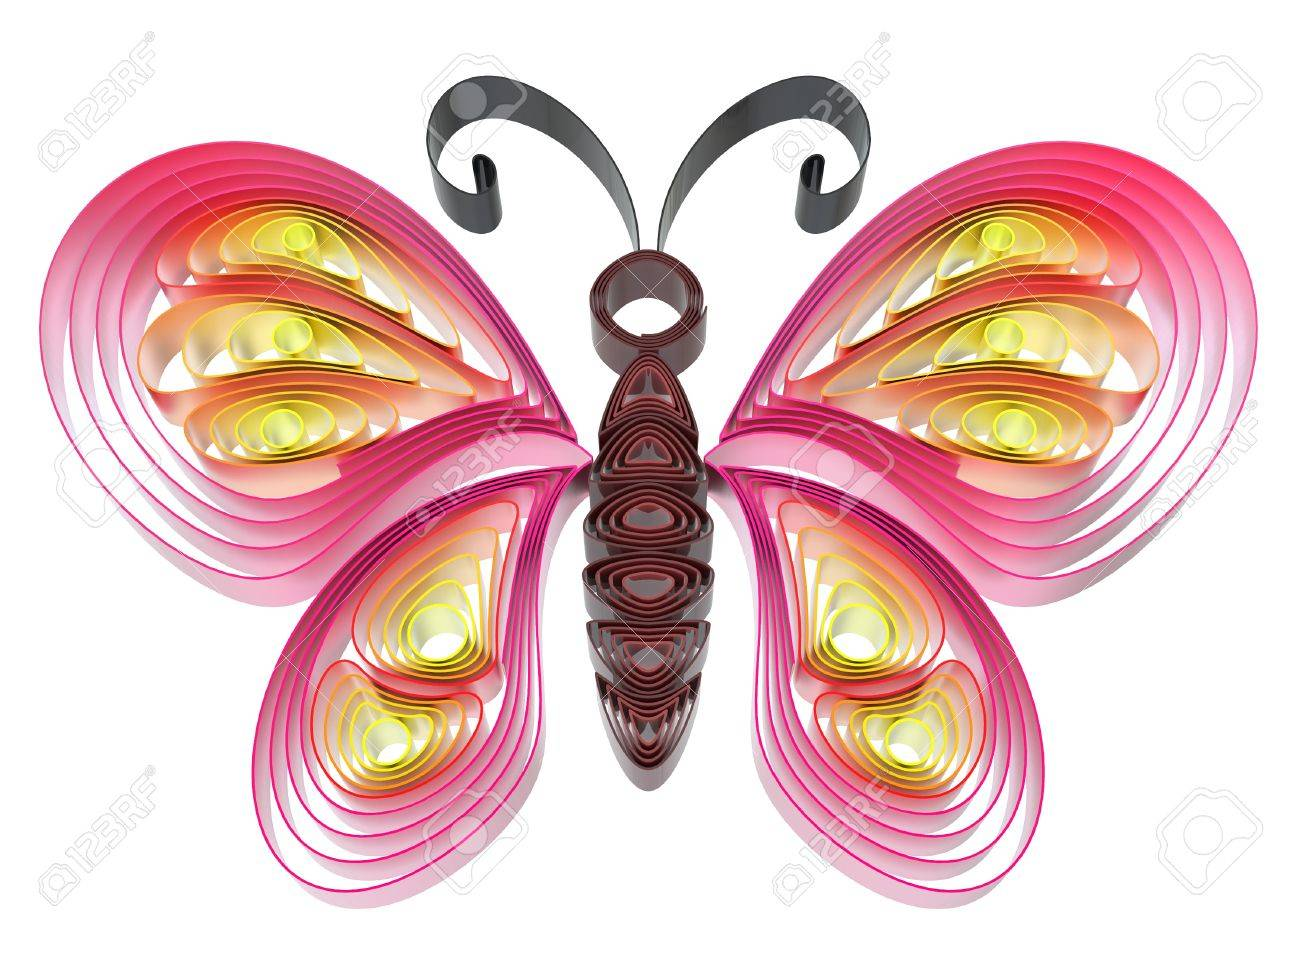 Abstract  colorful butterfly isolated on white background. 3d illustration in pseudo quilling style. Stock Illustration - 19072105